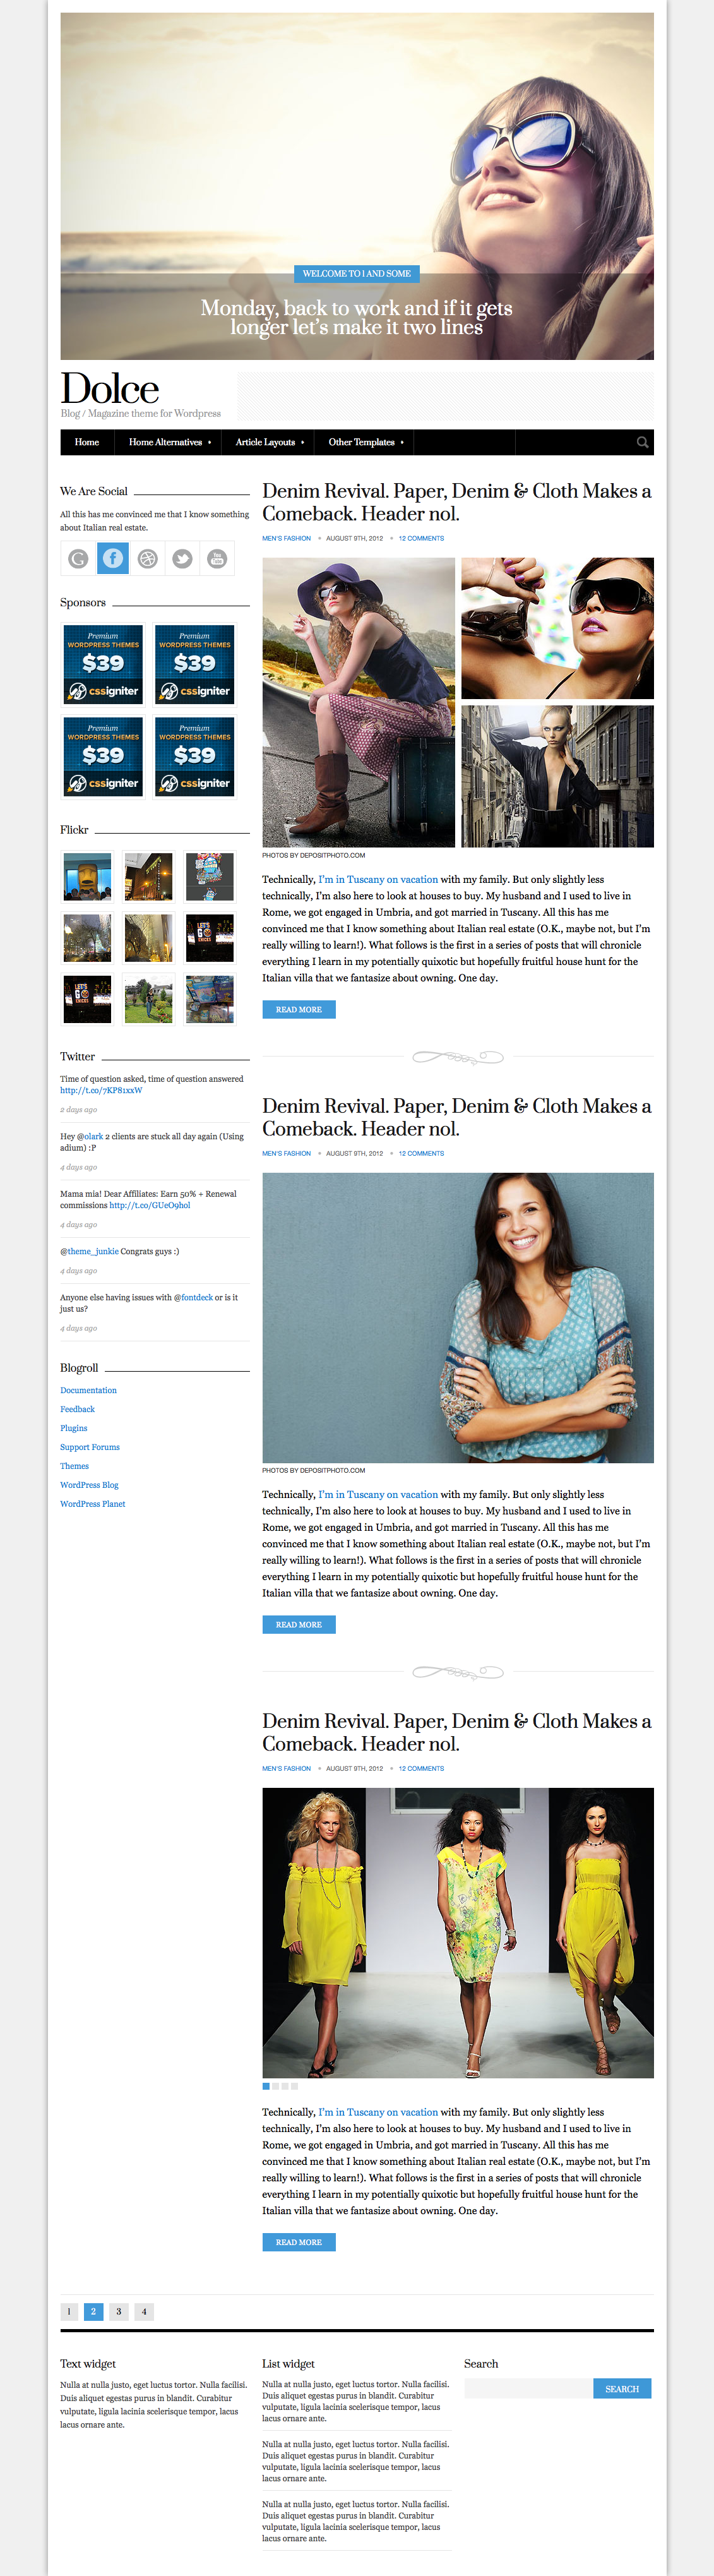 Dolce - Magazine / Blog Site Template